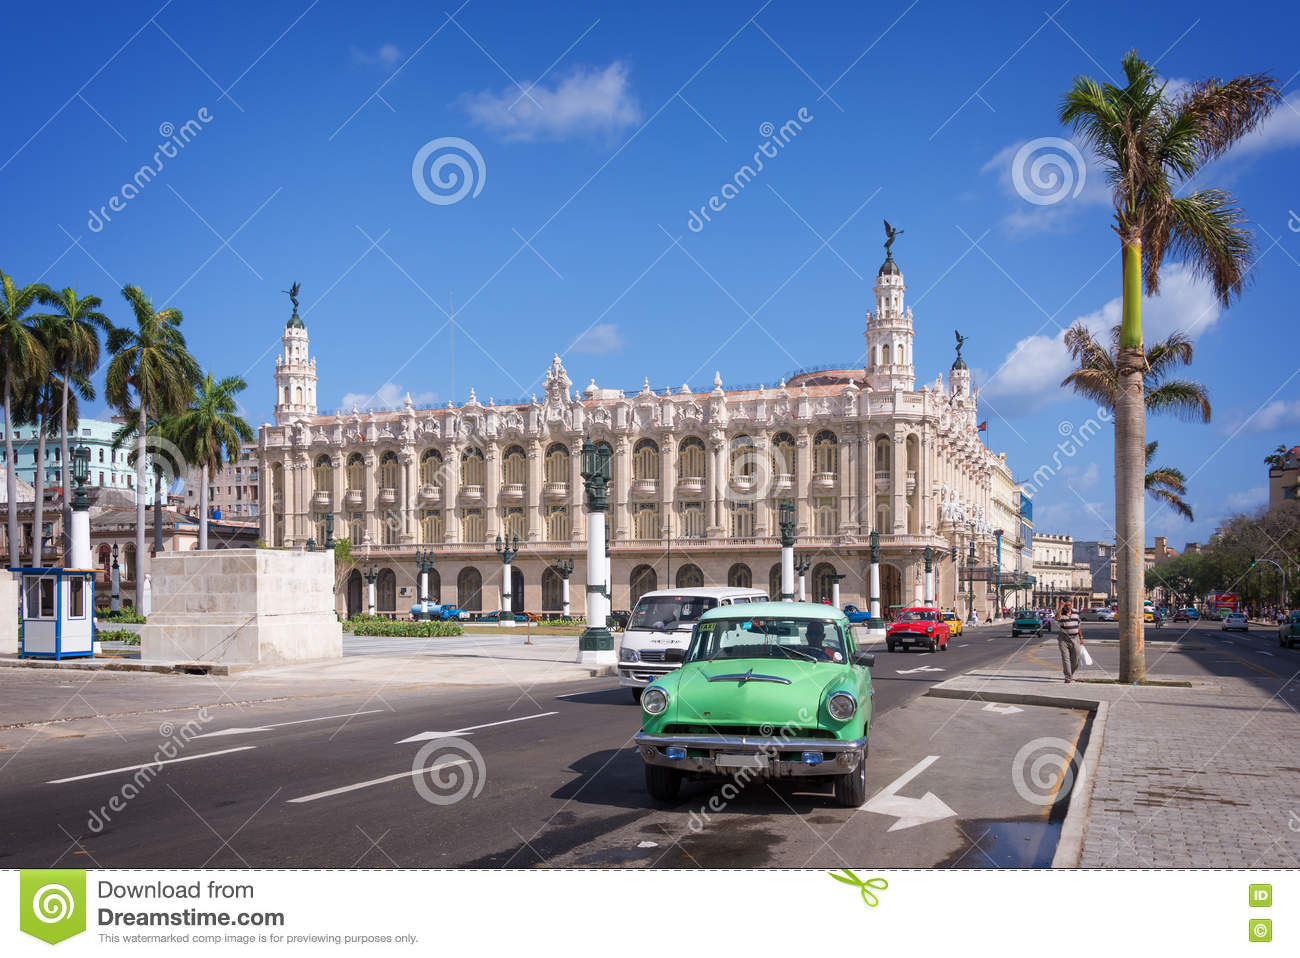 Classic american car on Paseo del Prado, Gran theatro de la Havana in the background